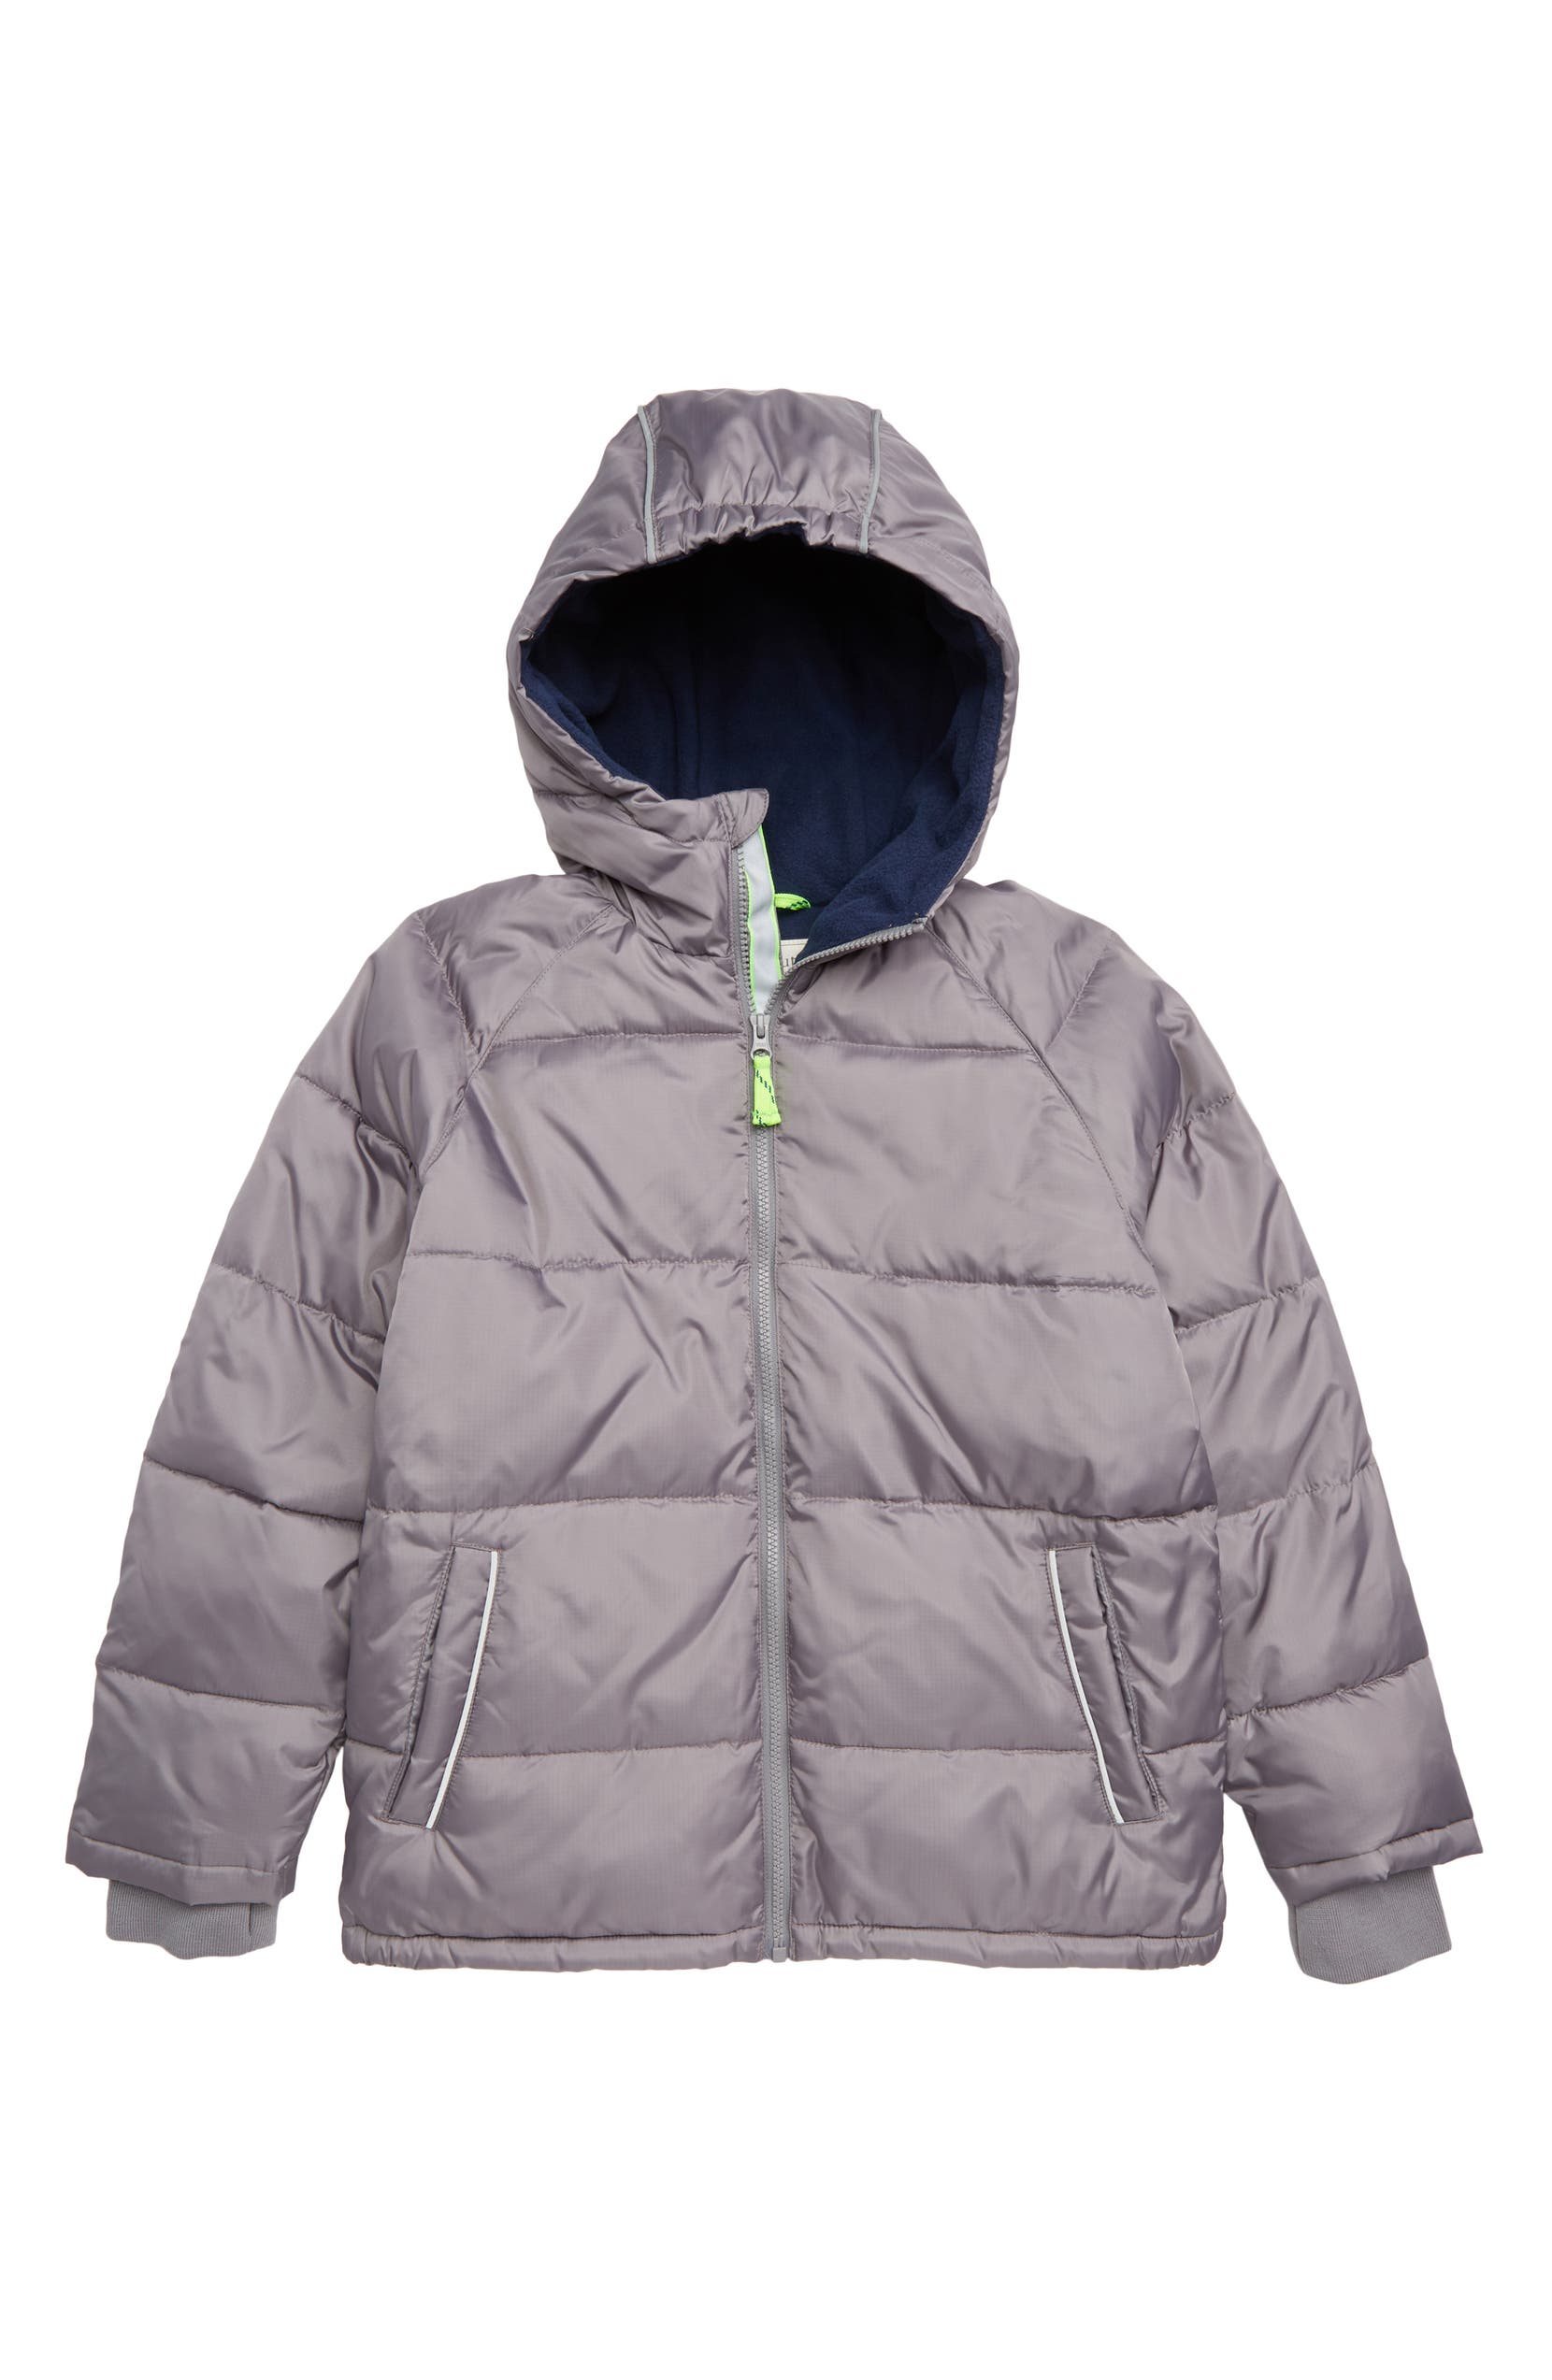 07bd2a9c23a5 crewcuts by J.Crew Primaloft® Puffer Jacket (Toddler Boys